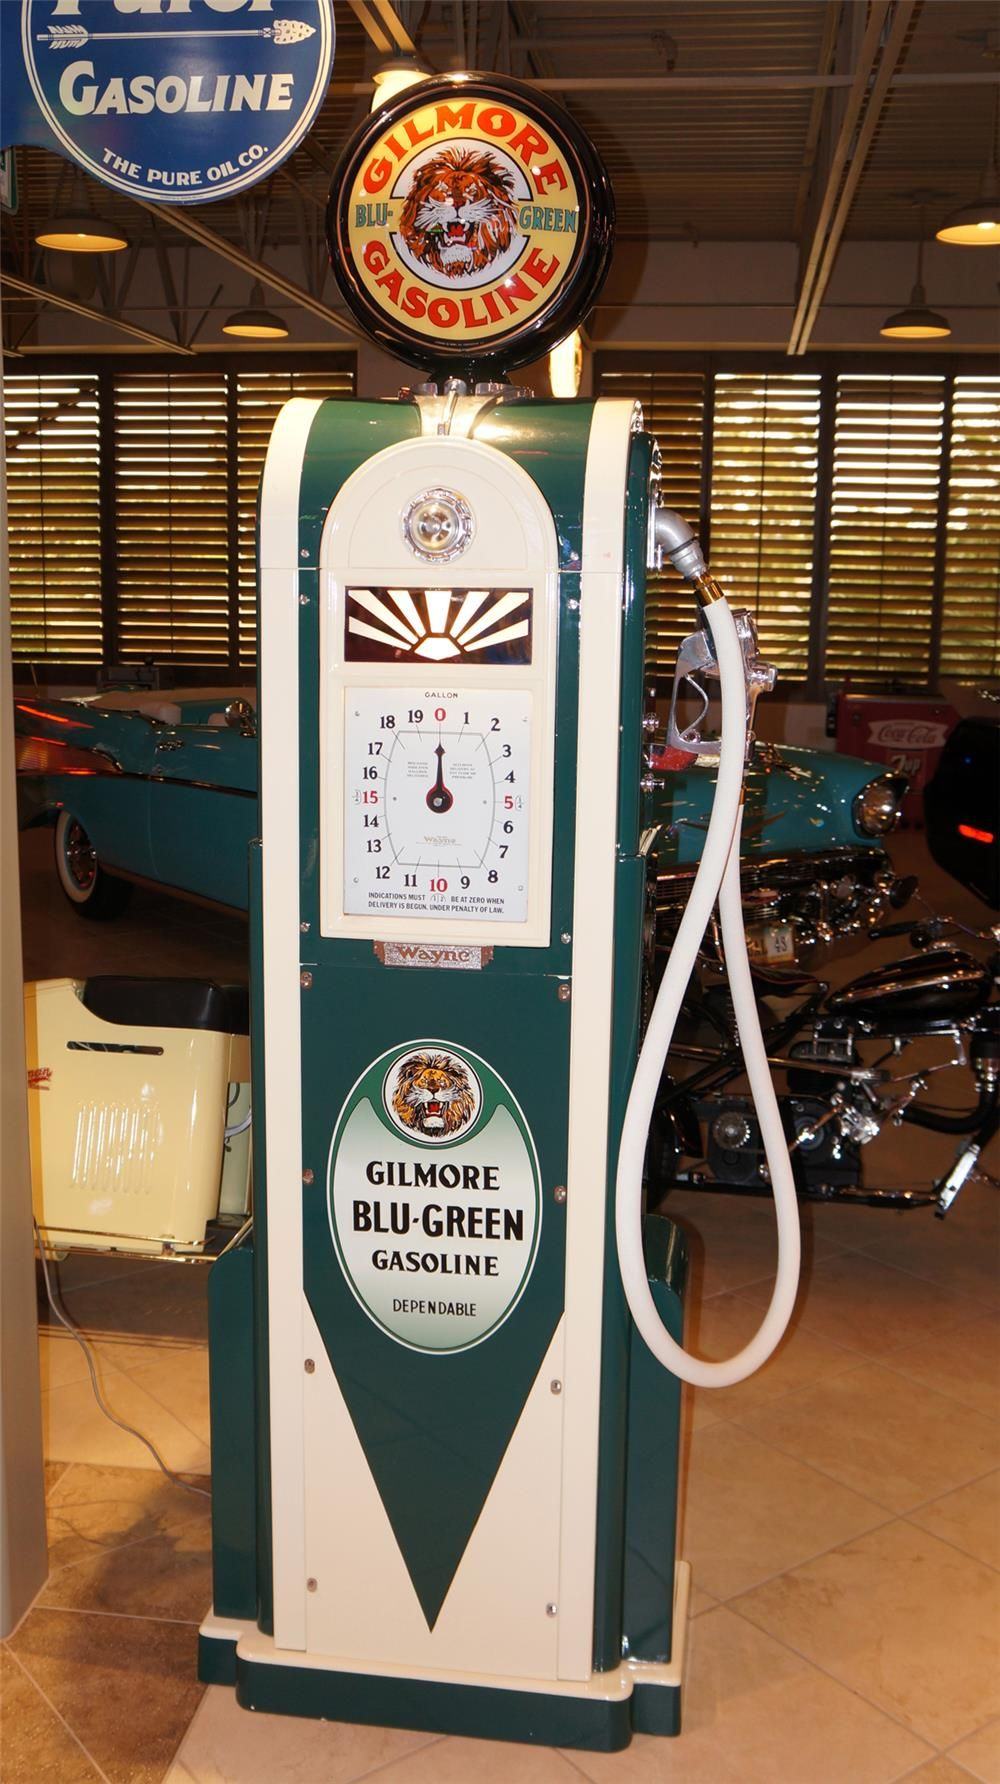 sizes of a gasoline station Old gas pump drawings or measurements  can anyone help me out with a scale drawing of a gas pump, circa 1940s 50s  if someone could give a hint about the size.